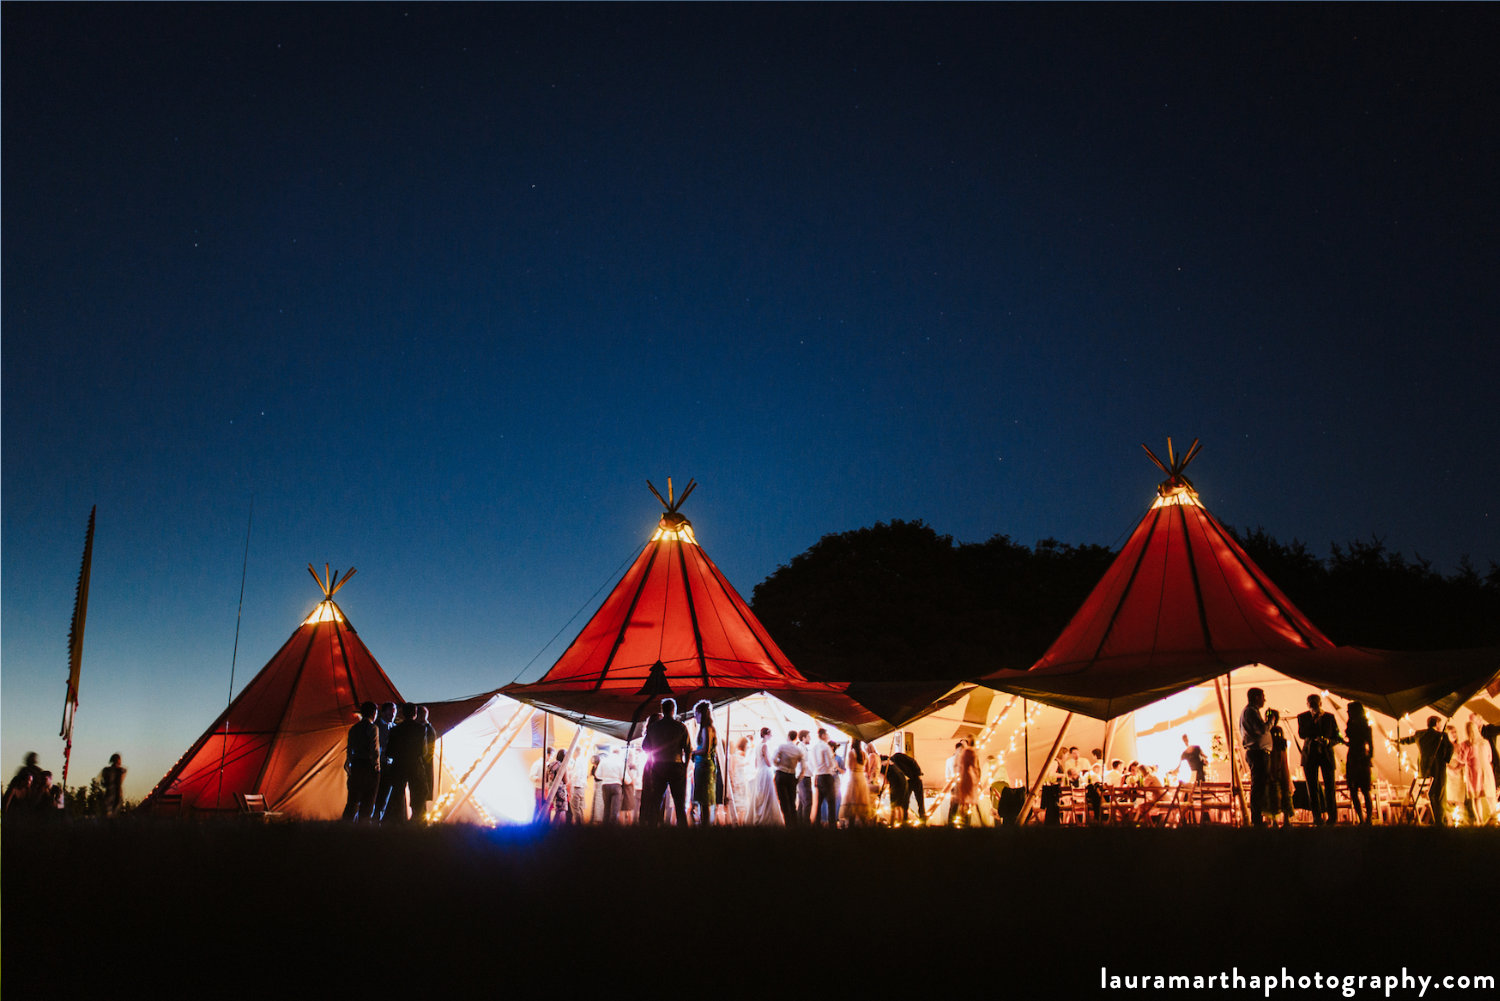 Cotswolds_tipi_event_Buffalo.jpg